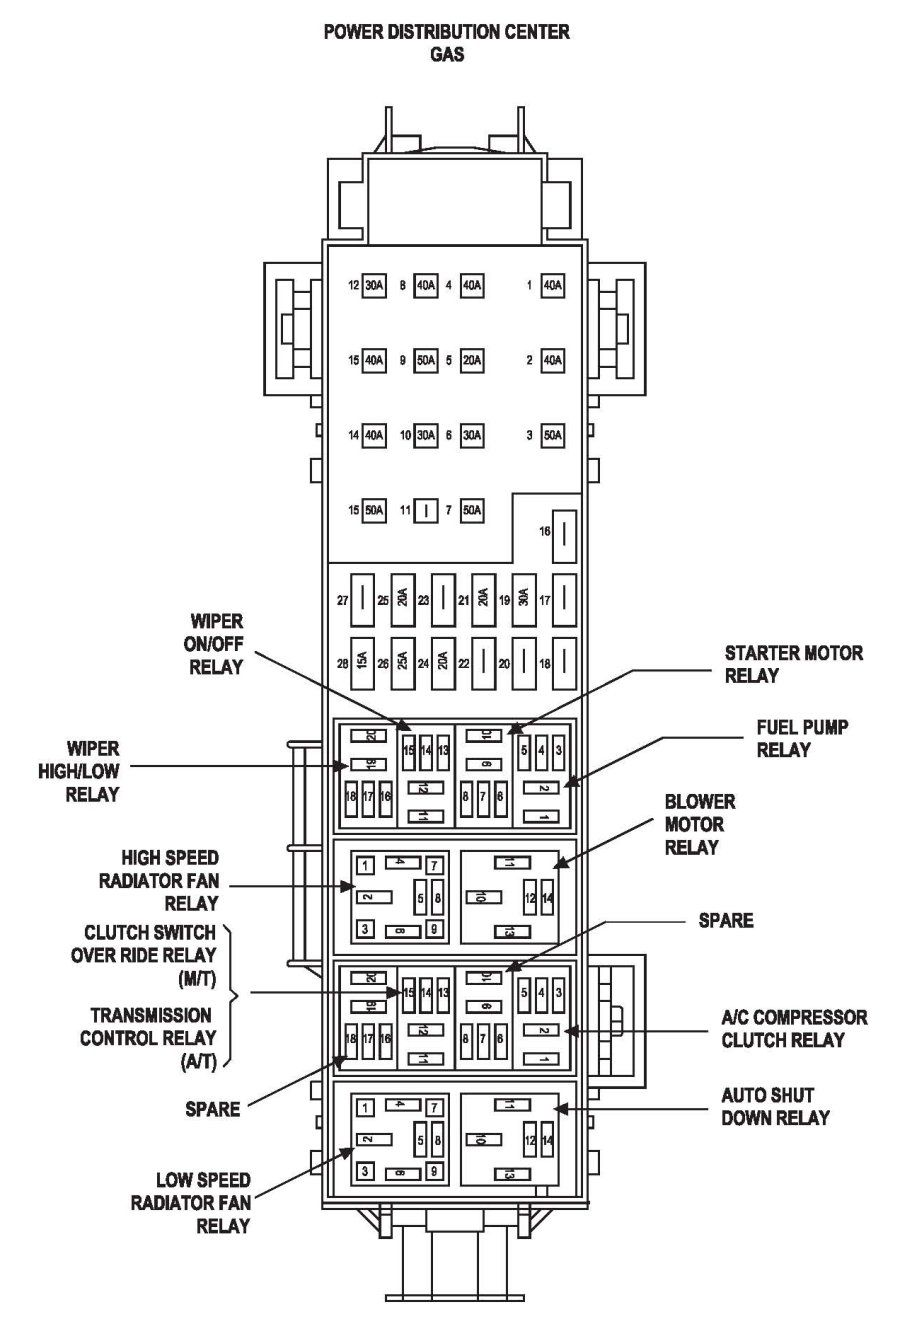 b3536c3739783eb19f827744cc42c3c4 jeep liberty fuse box diagram image details jeep liberty 2003 Jeep Wrangler Fuse Box Diagram at edmiracle.co